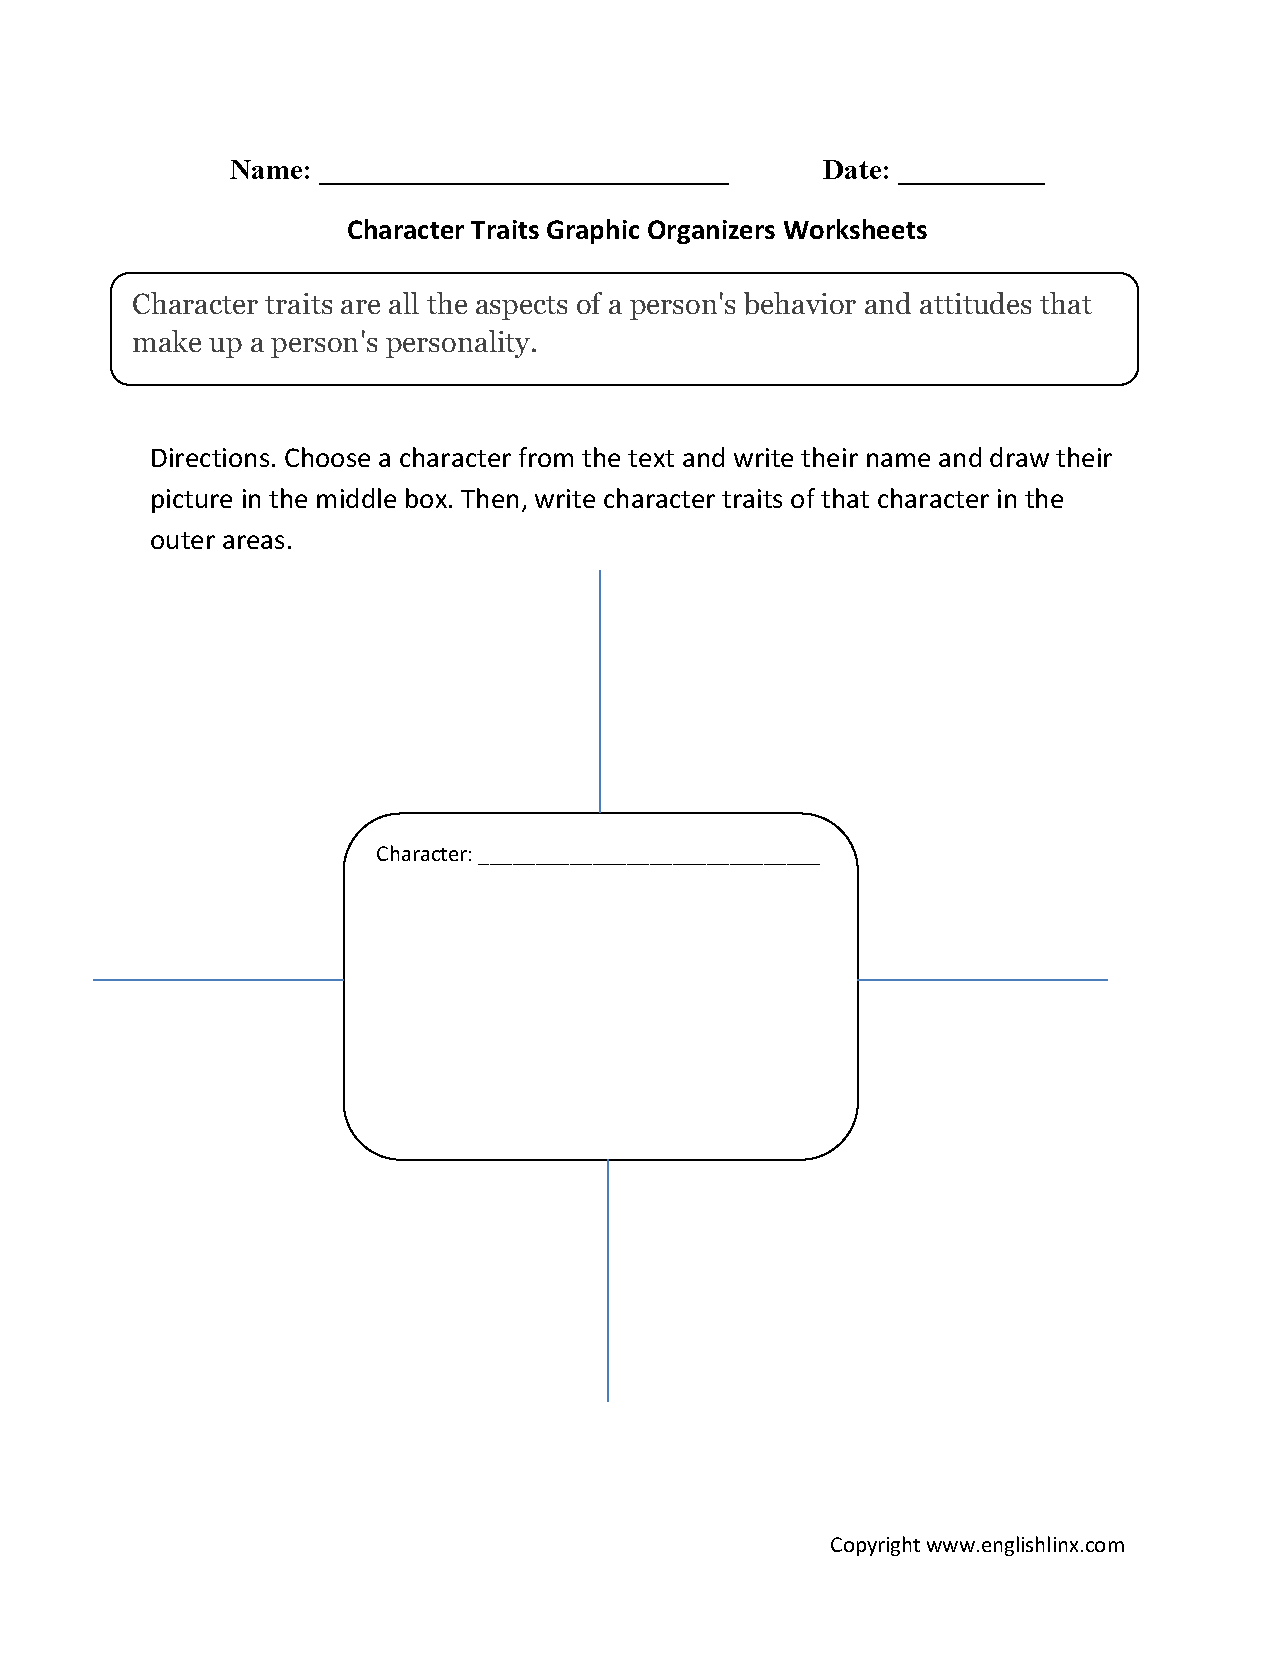 englishlinx | graphic organizers worksheets